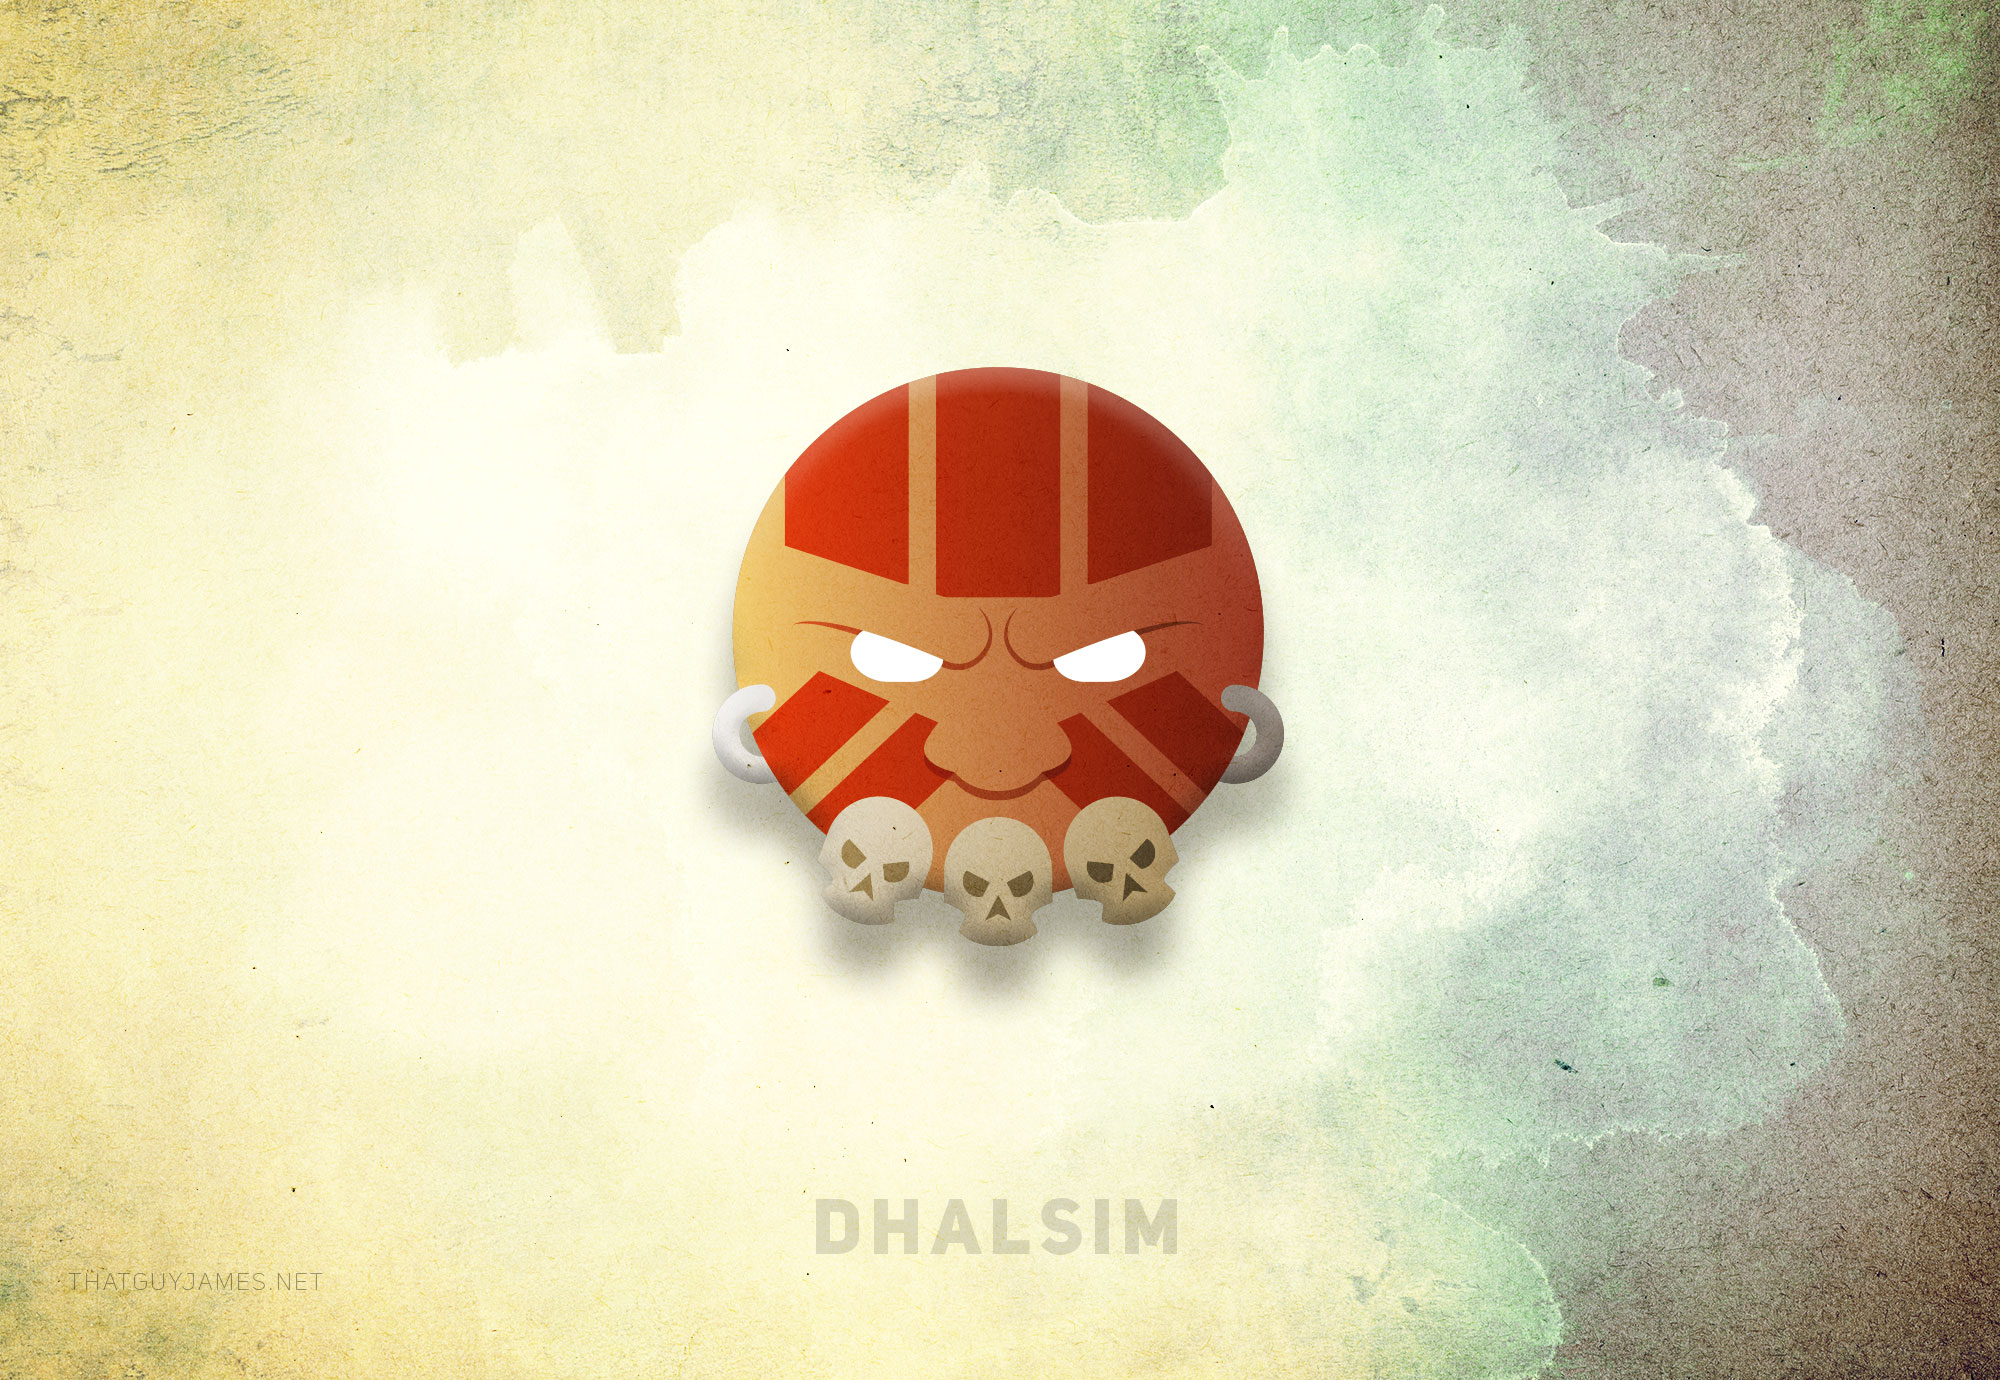 An exercise in geometric simplicity, Dhalsim came together almost instantly. My only struggle with this character was trying to give him ears for the rings to slot into, until I realized they were not needed. The face paint makes him look like a volleyball, and that makes me happy.